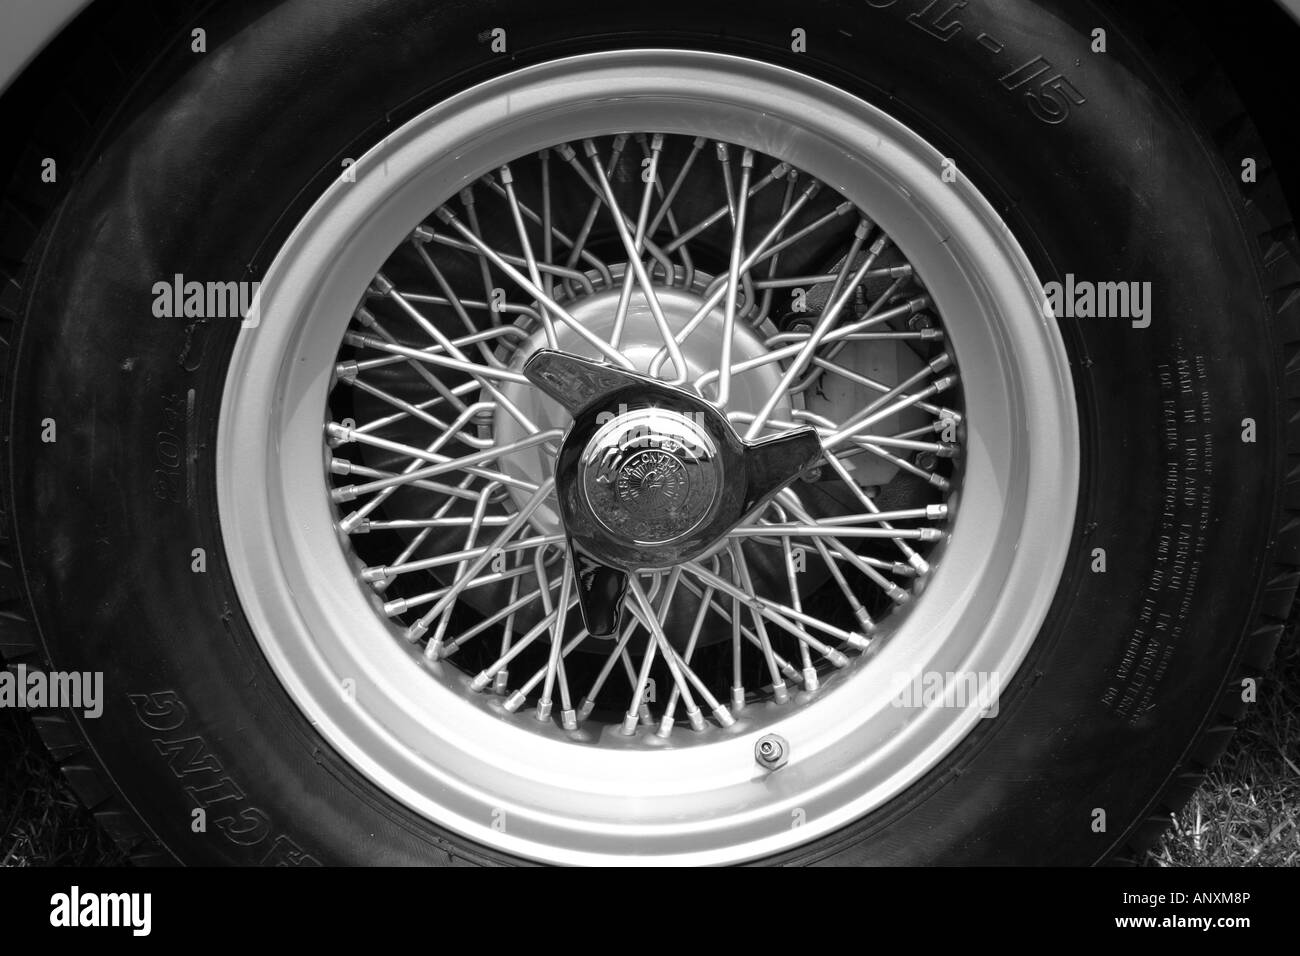 Wire Wheel Classic Stock Photos & Wire Wheel Classic Stock Images ...